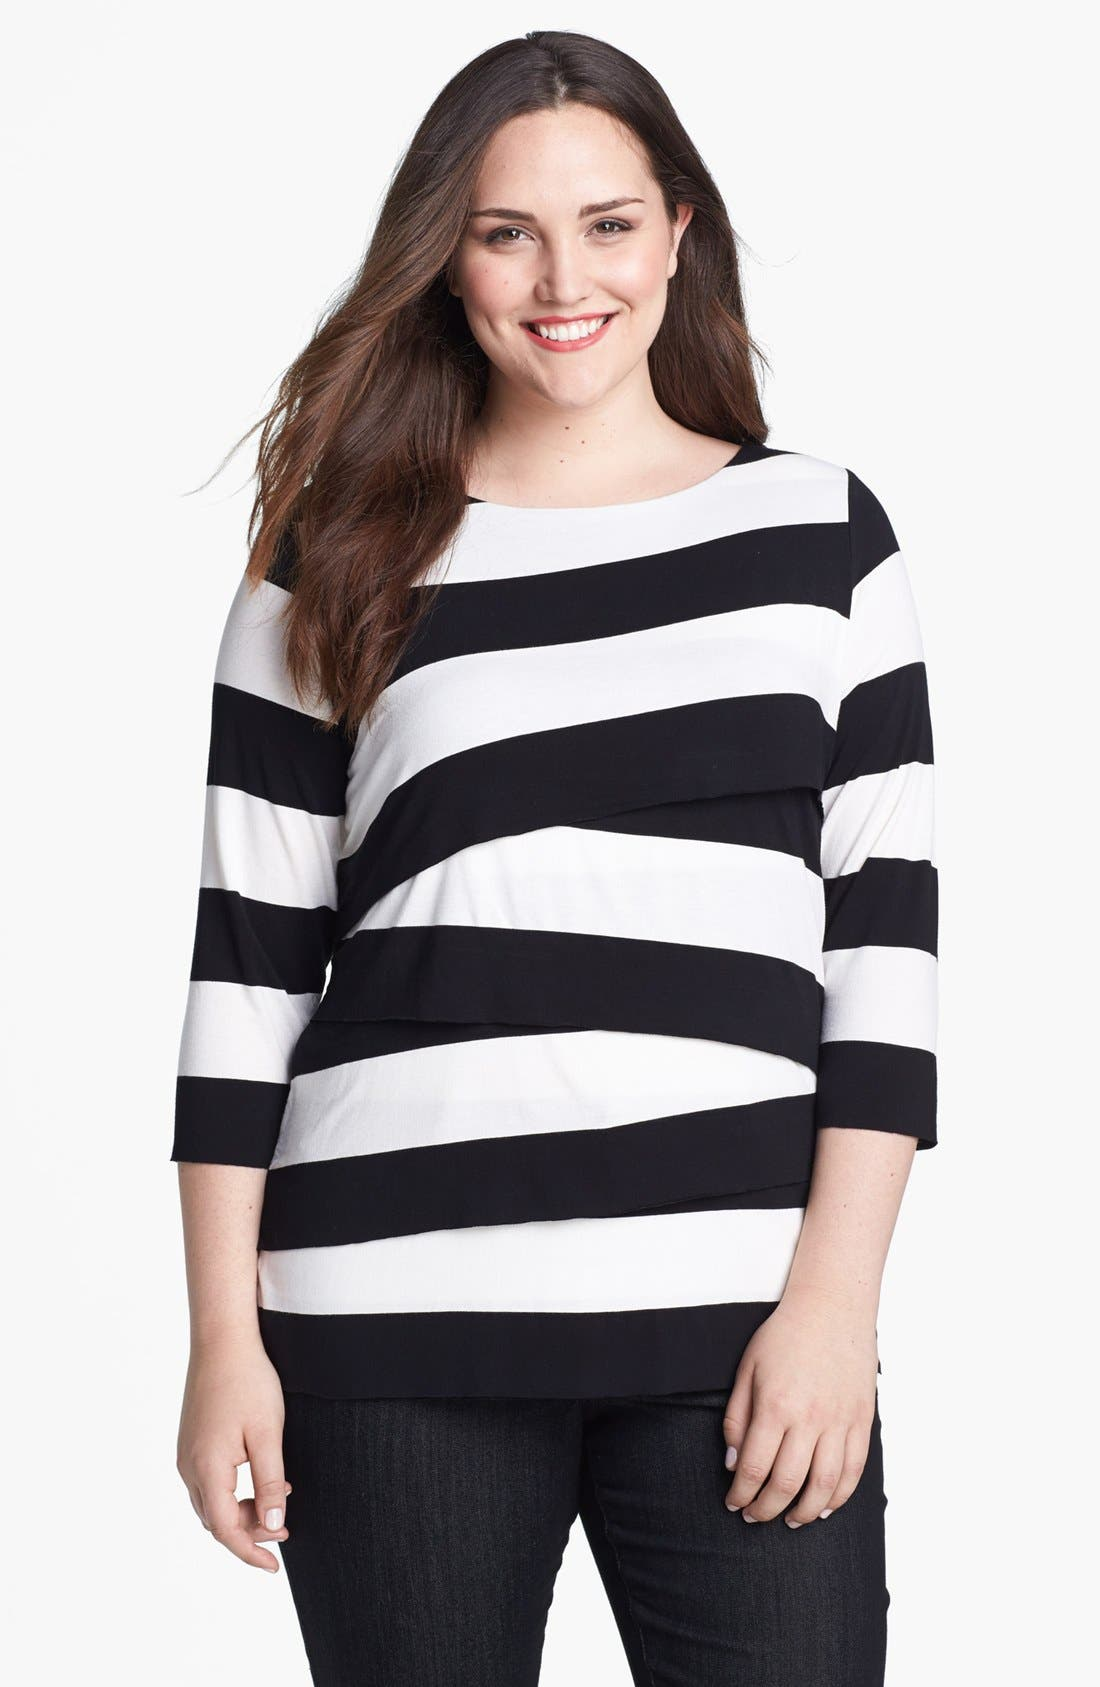 Alternate Image 1 Selected - Vince Camuto 'Zigzag' Stripe Tee (Plus Size)